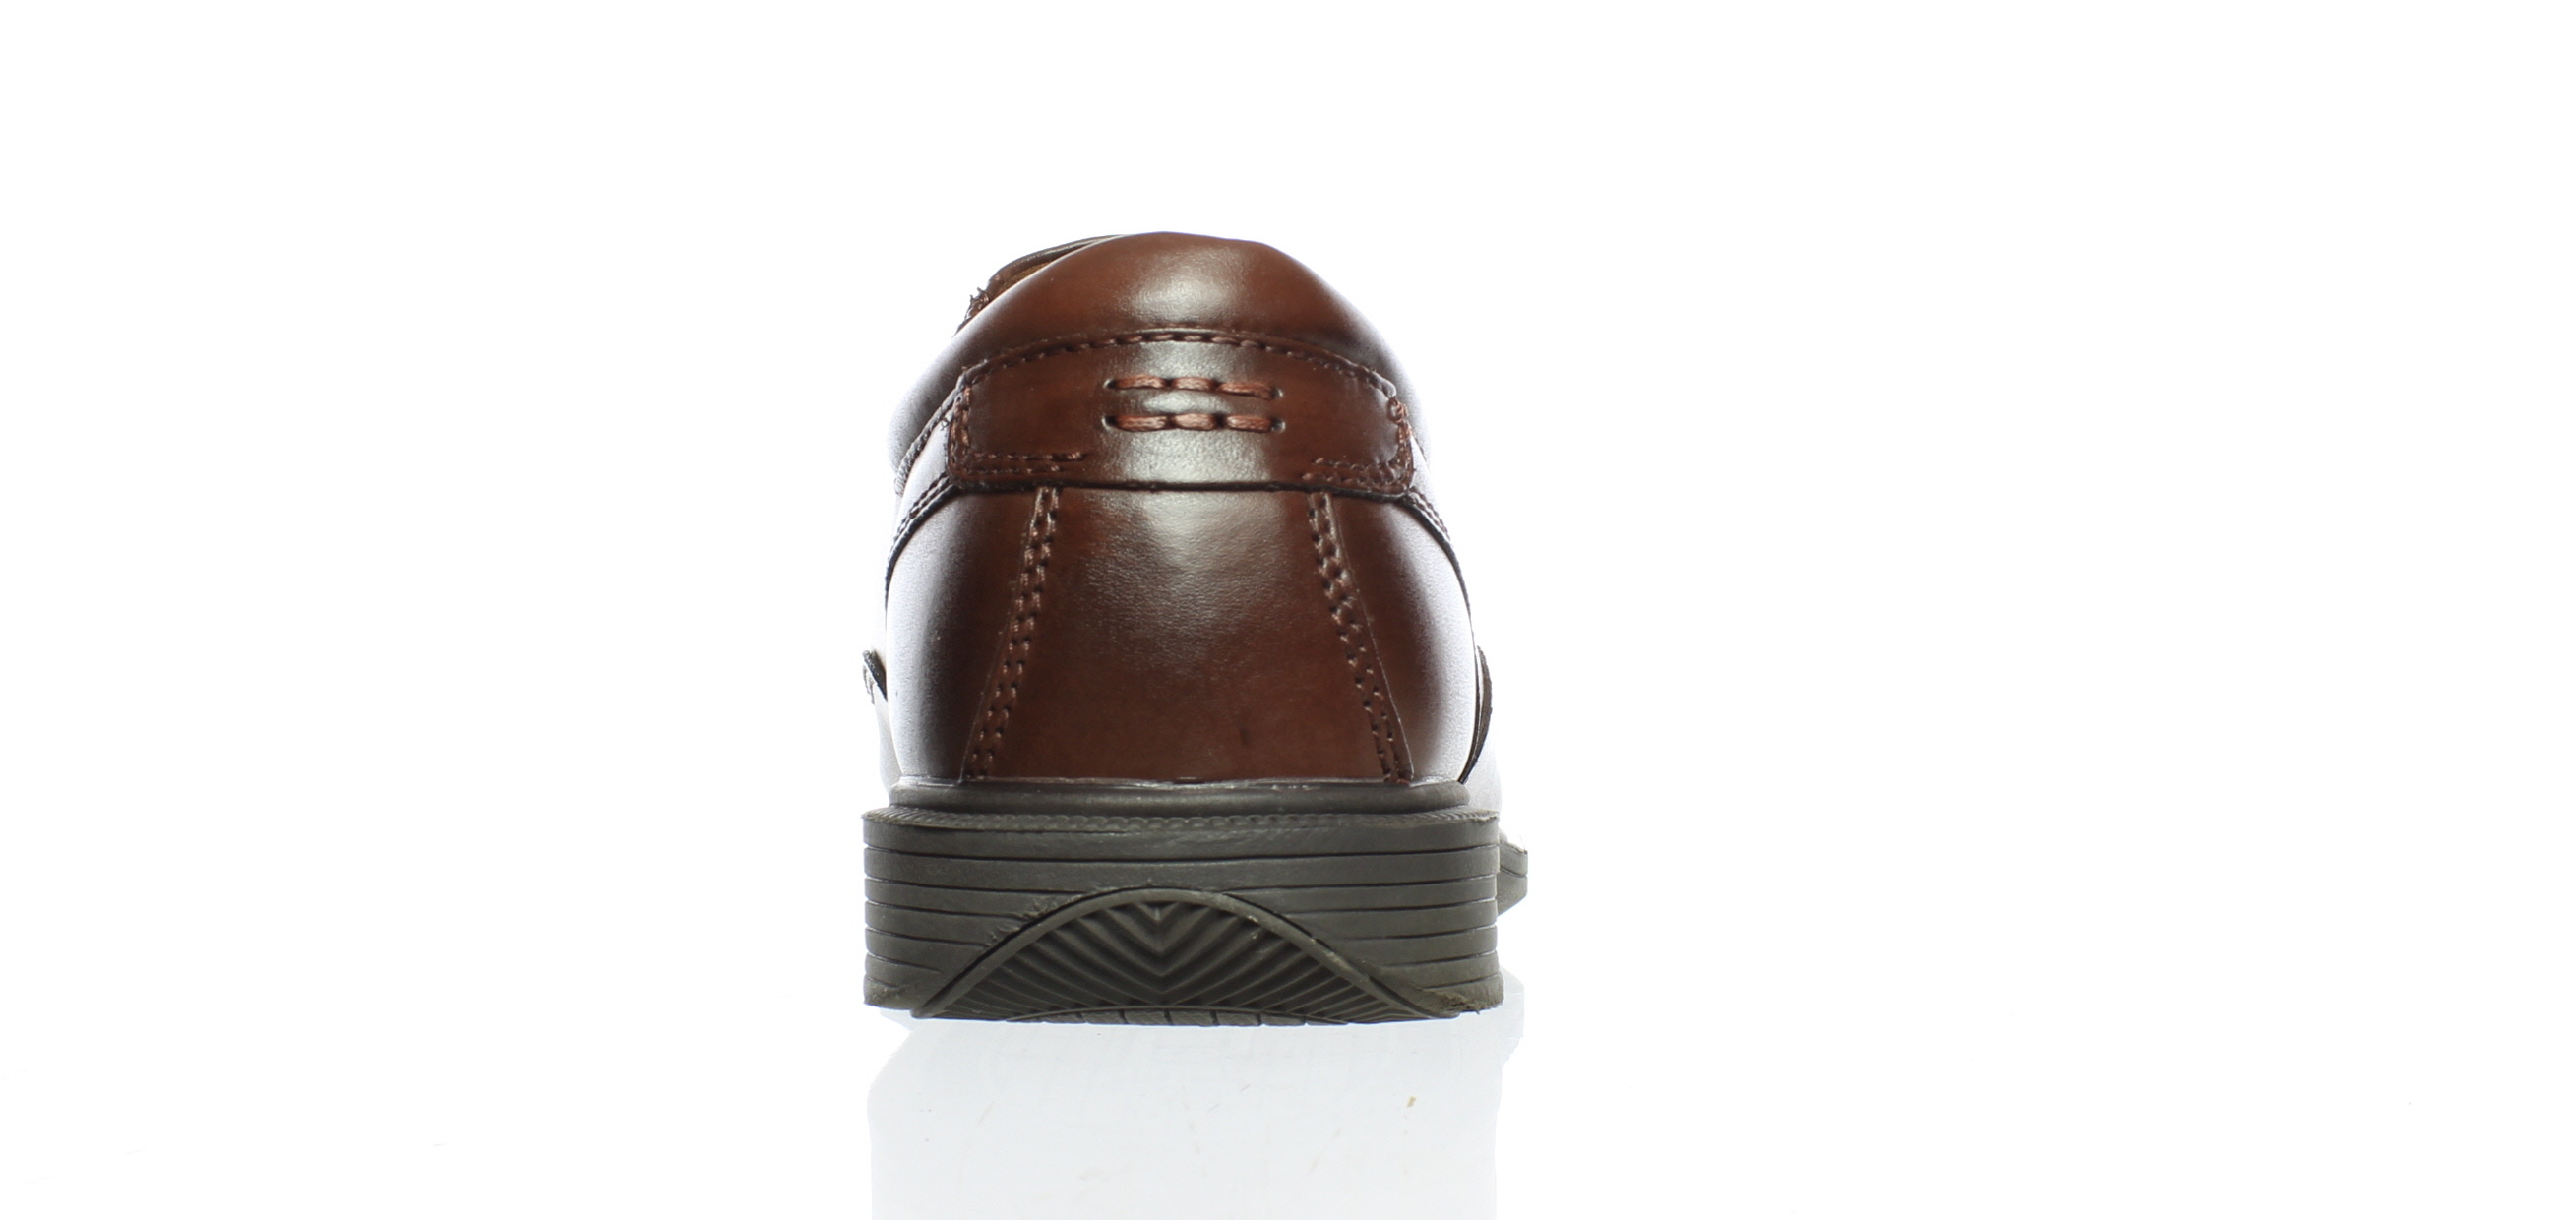 feb3c897d38 Nunn Bush Mens Bleeker St. Cognac Loafers Size 11 (40713 ...